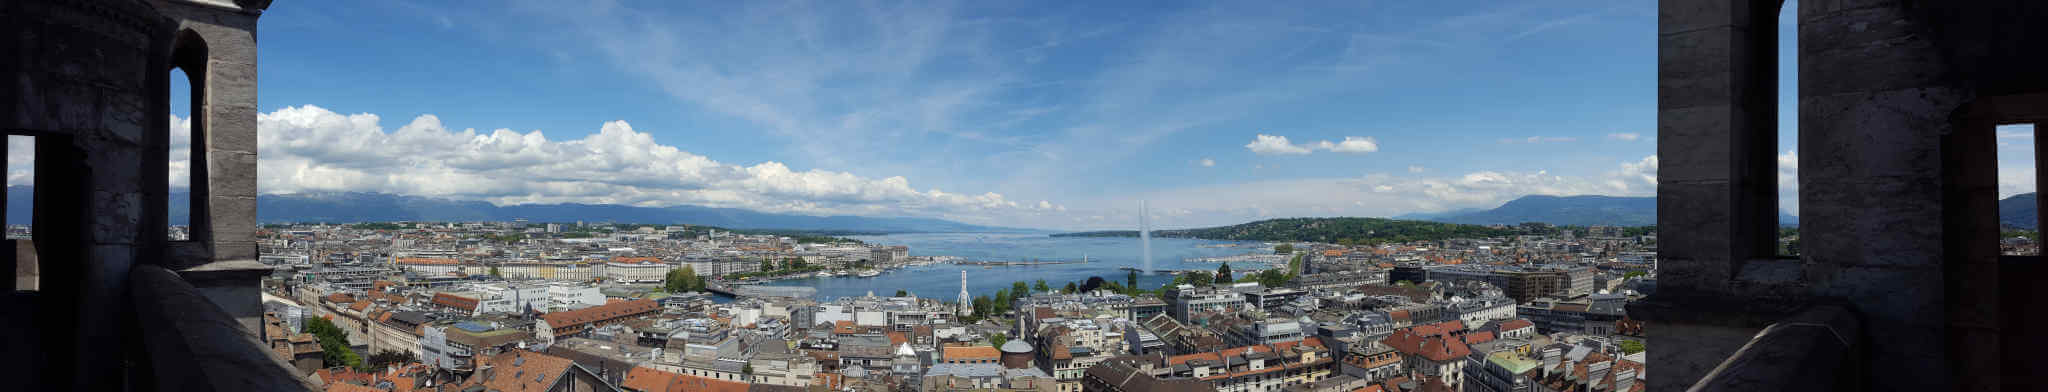 Genf Panorama mit Blick Richtung See.